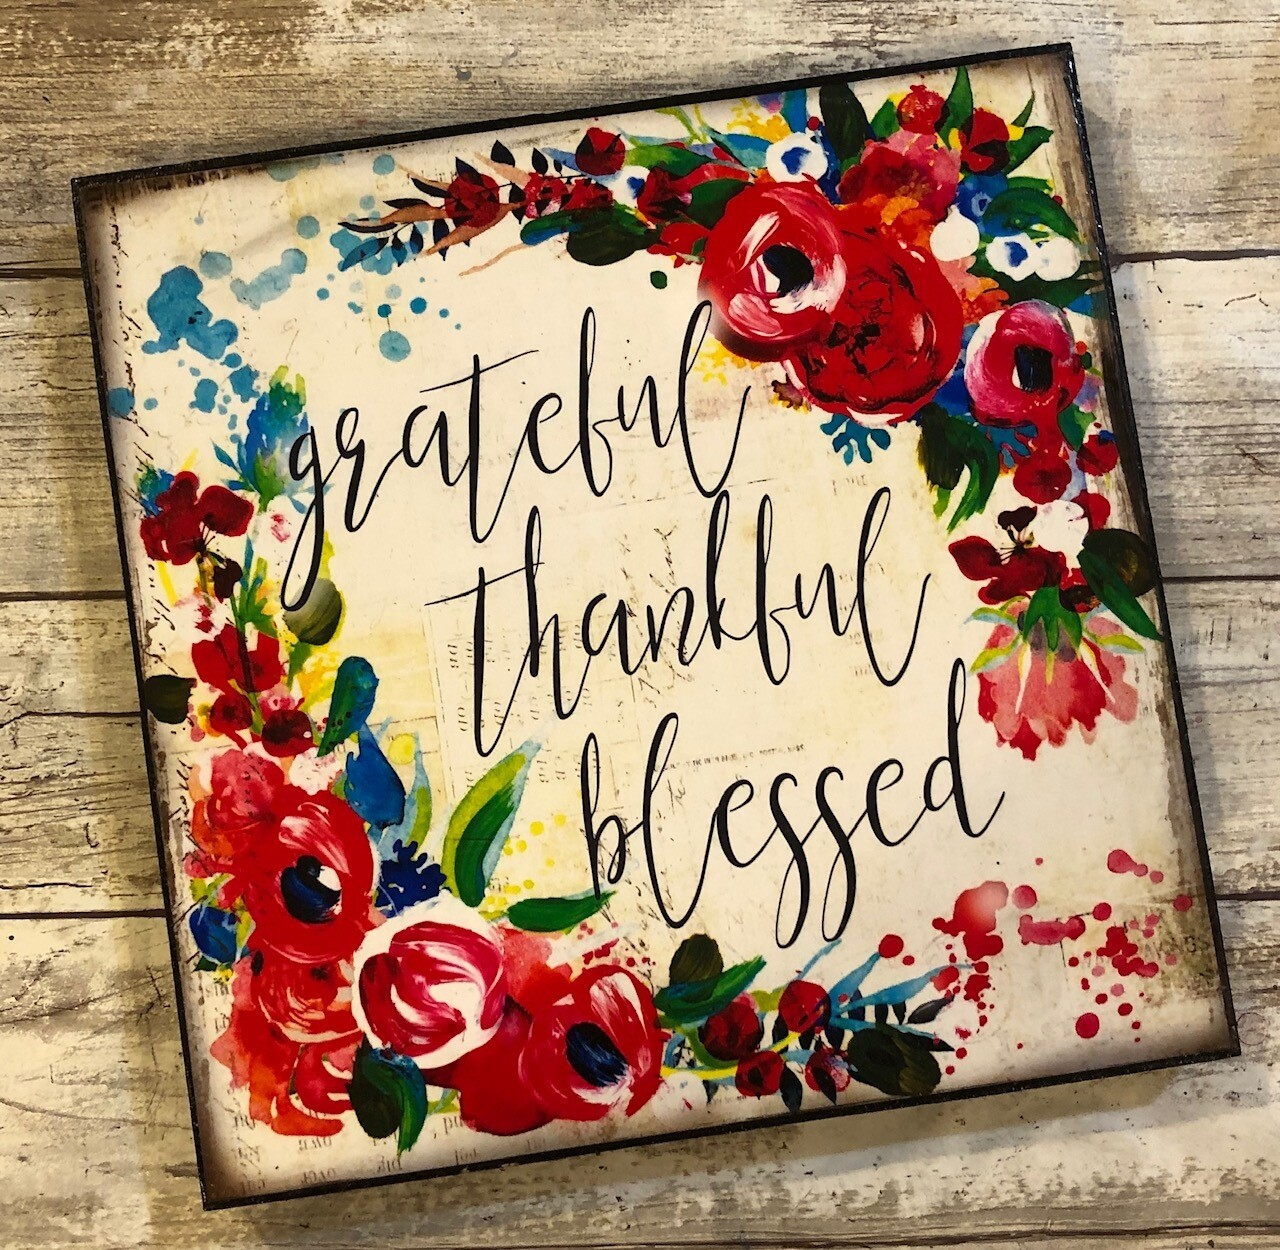 """Grateful, Thankful, Blessed"" 8x8 Clearance"